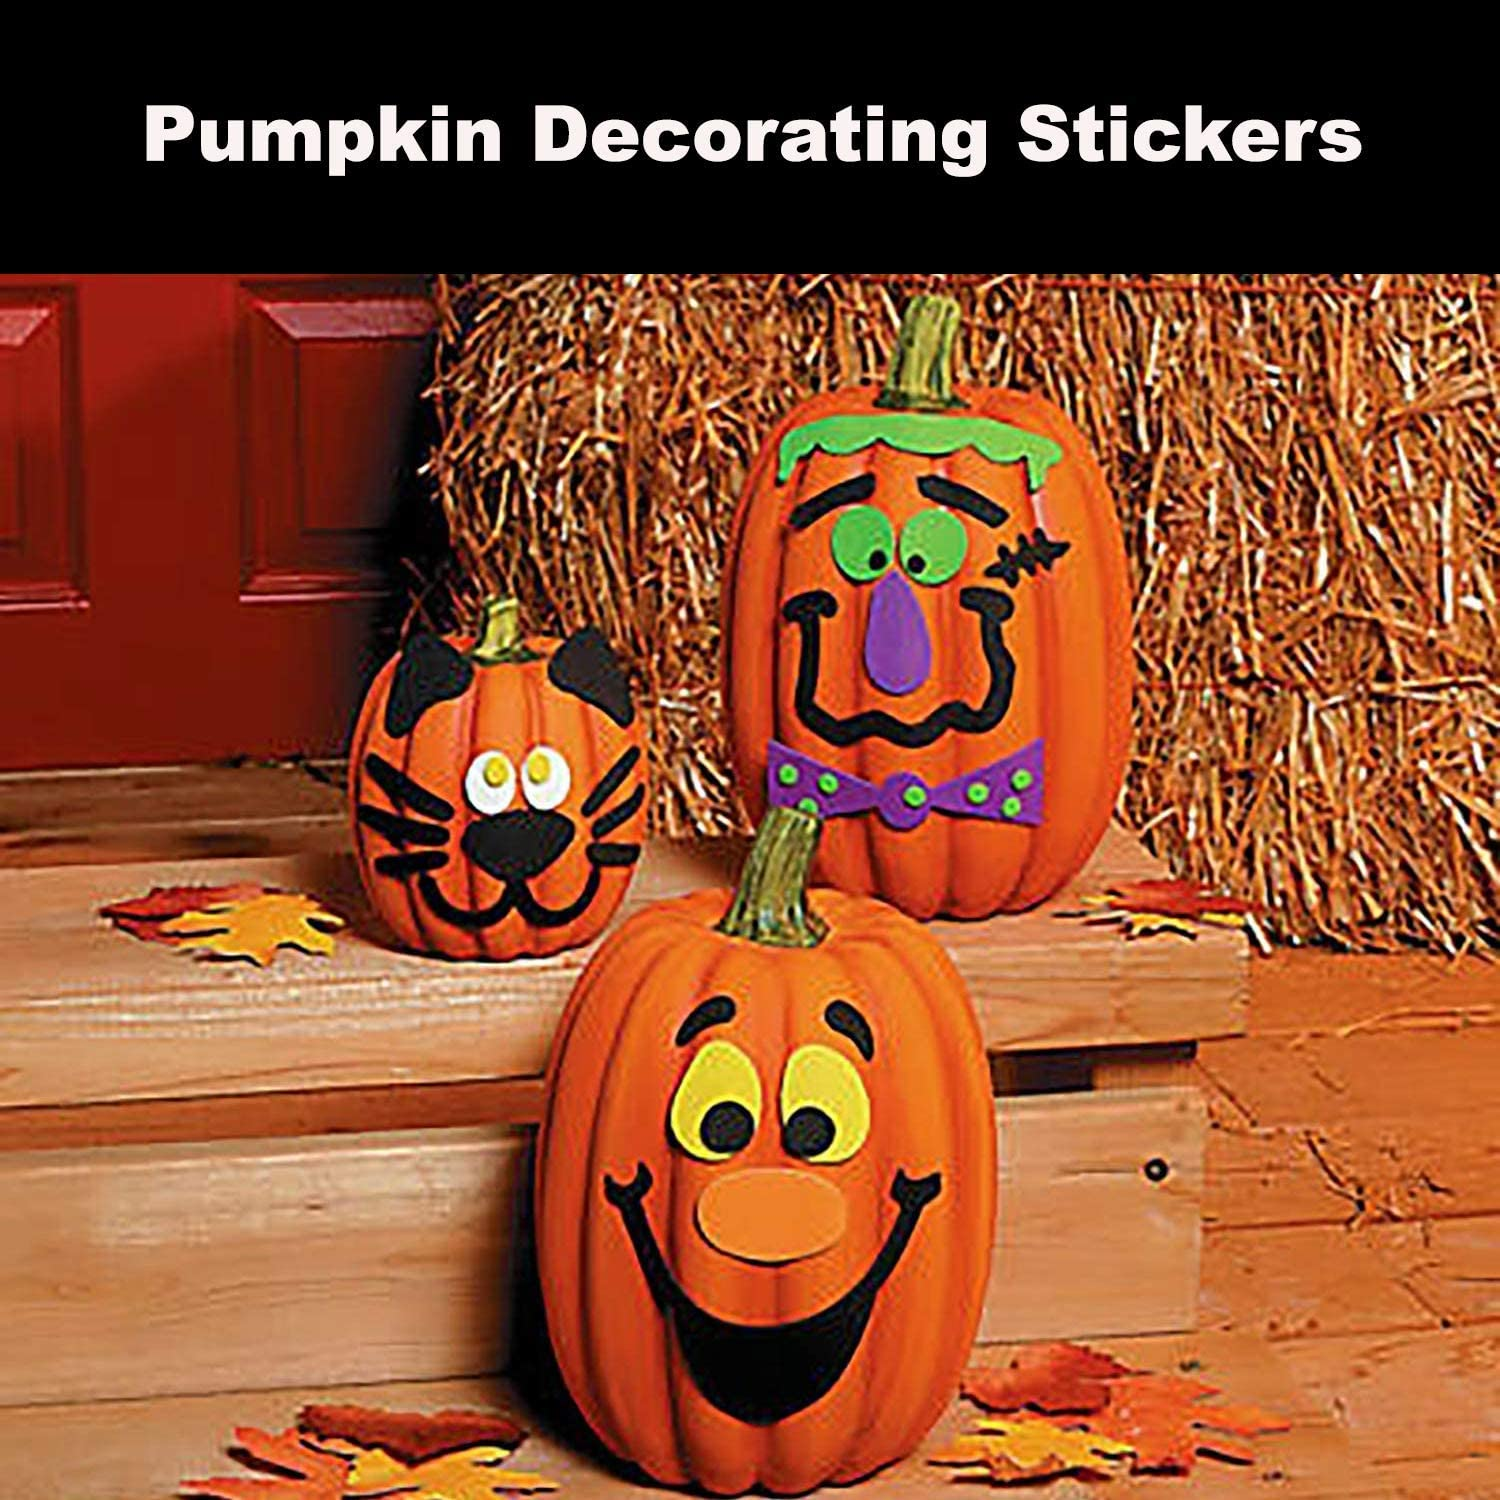 4e S Novelty Halloween Pumpkin Decorating Stickers Kit Self Adhesive Pumpkin Face Foam Stickers 24 Pack Decorates 24 Pumpkins For Jack O Lantern Decoration Kit For Kids Toddlers Toys Games